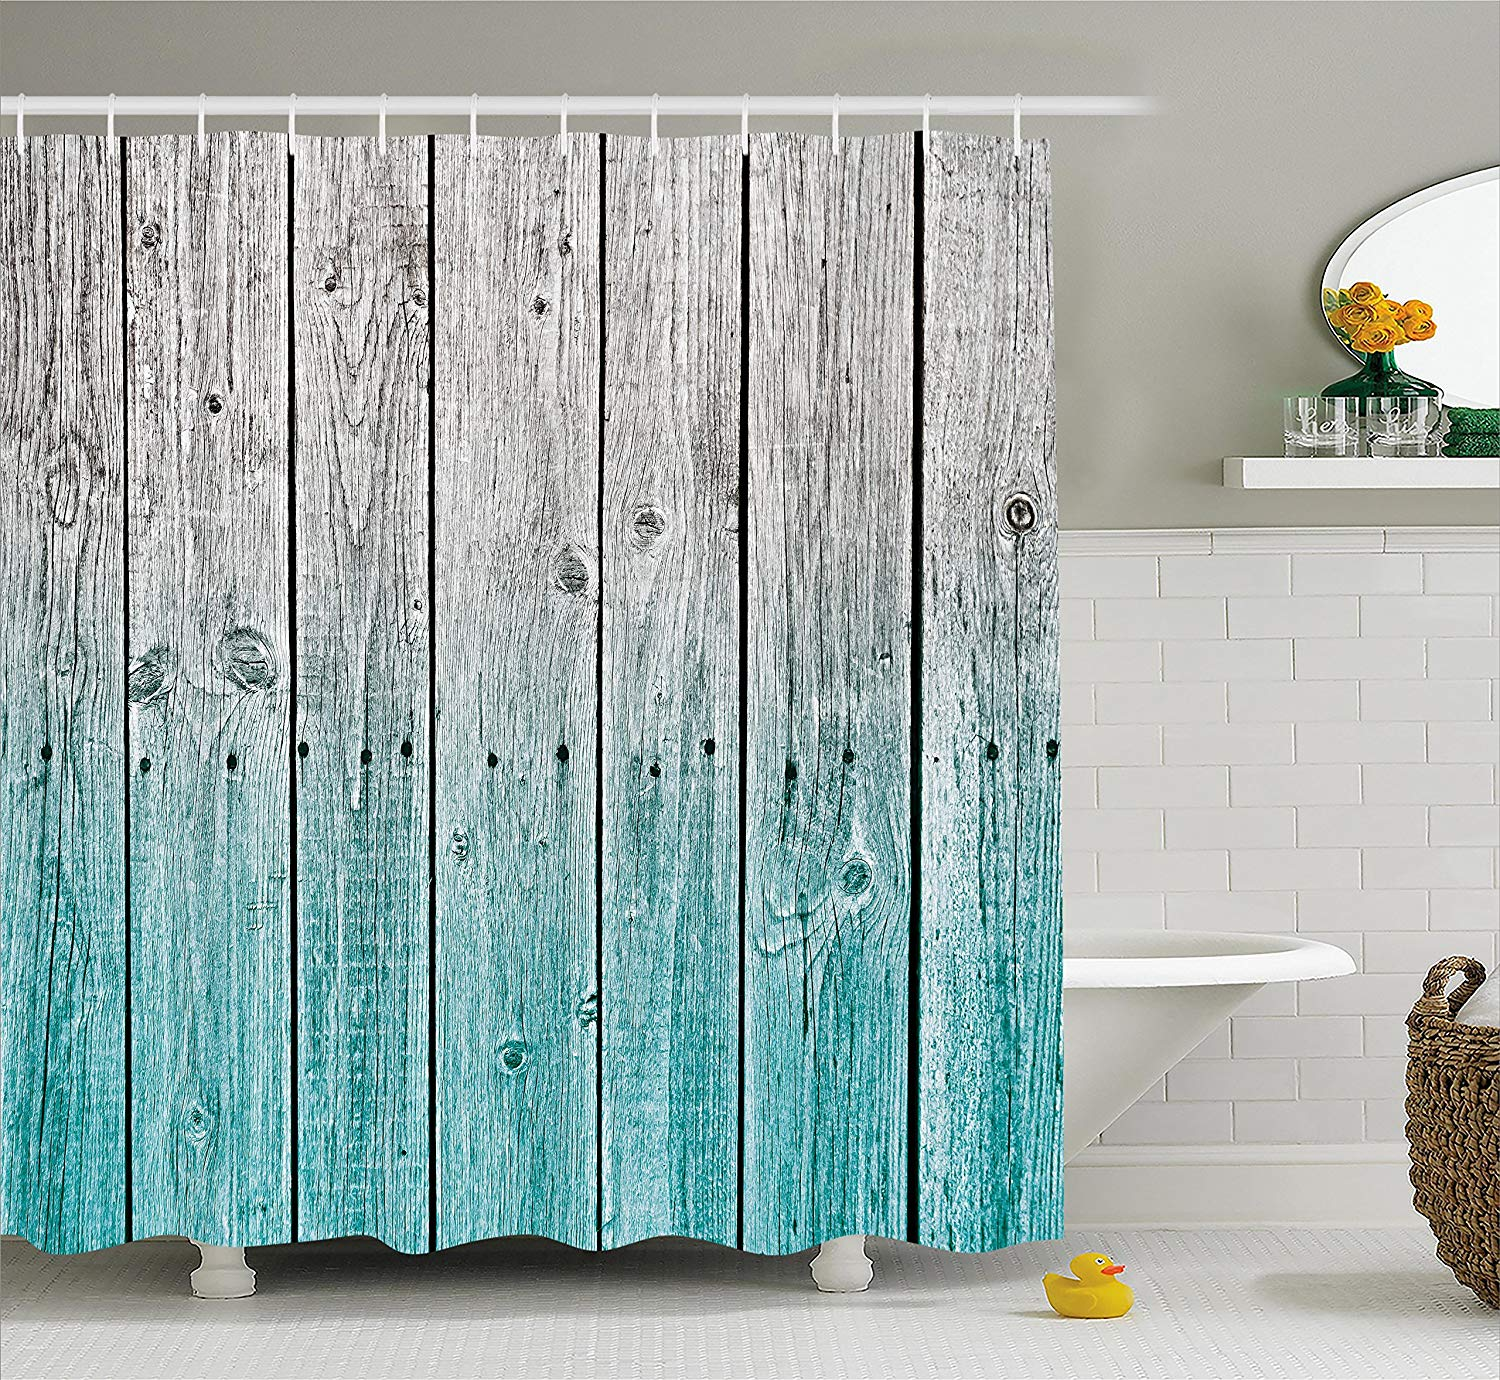 rustic shower curtain wood panels background with digital tones effect country house image